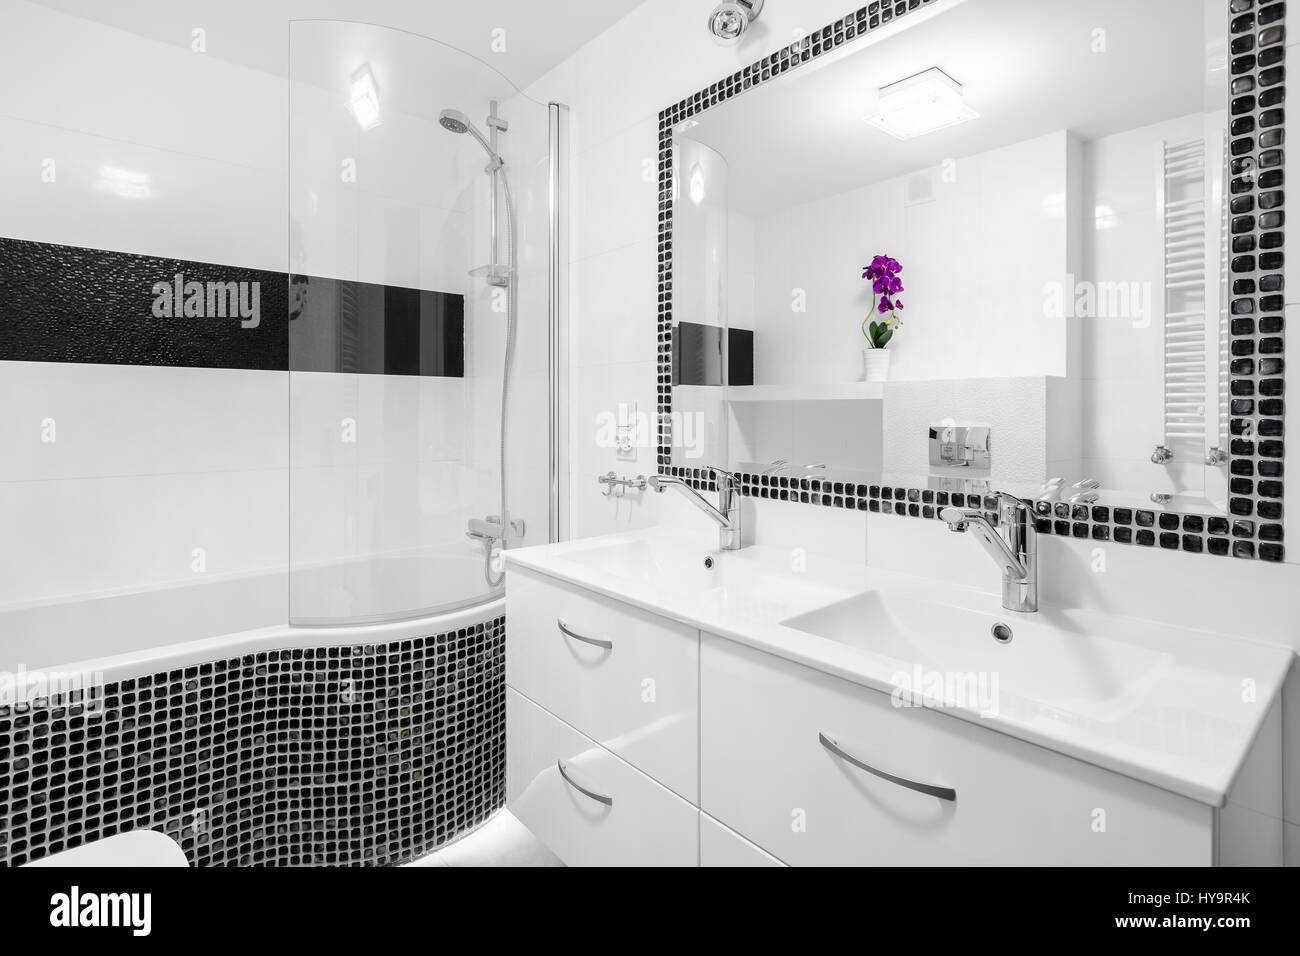 Black and white luxury bathroom with mosaic tiles, bathtub and ...